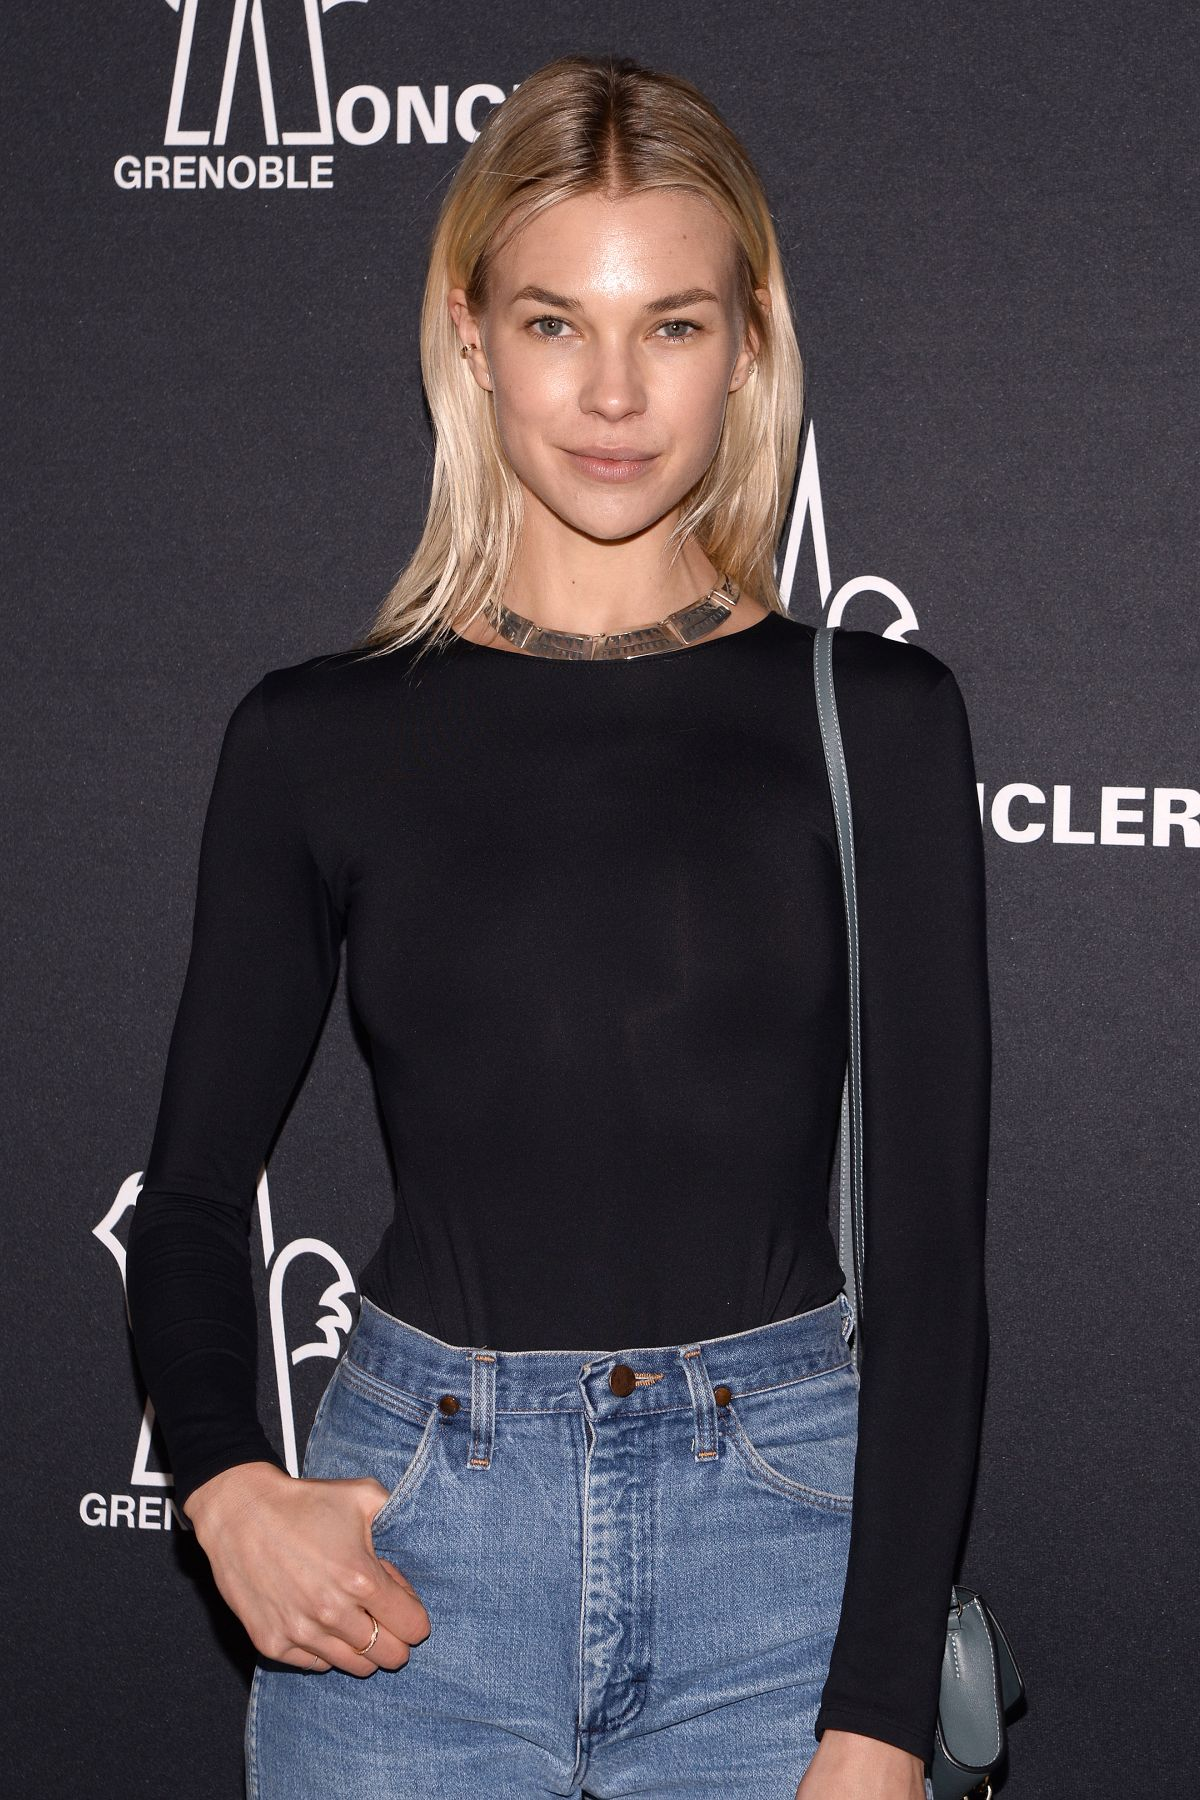 Britt Maren At Moncler Grenoble fashion Show in NYC